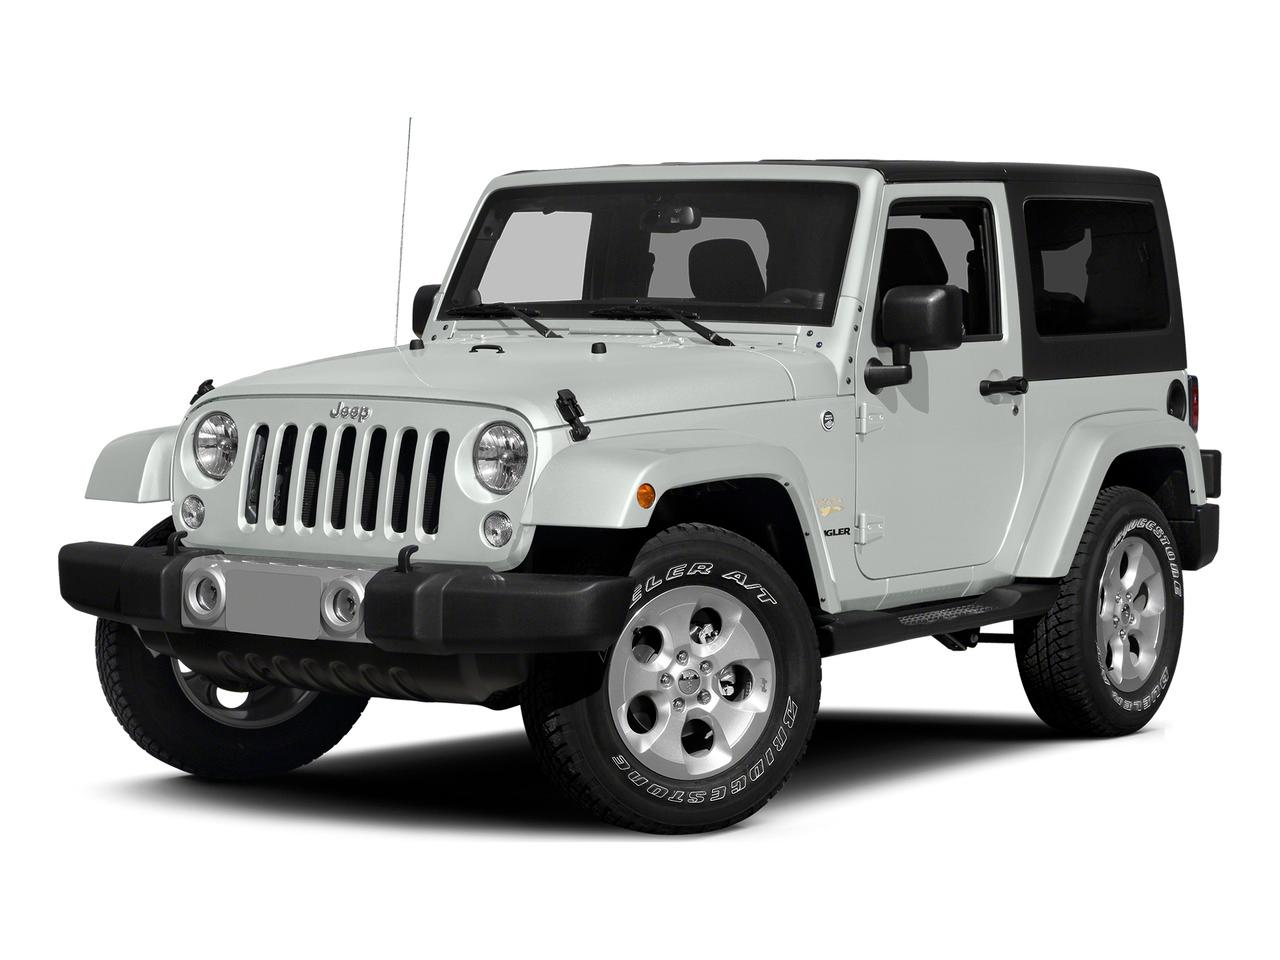 2015 Jeep Wrangler Vehicle Photo in Beaufort, SC 29906